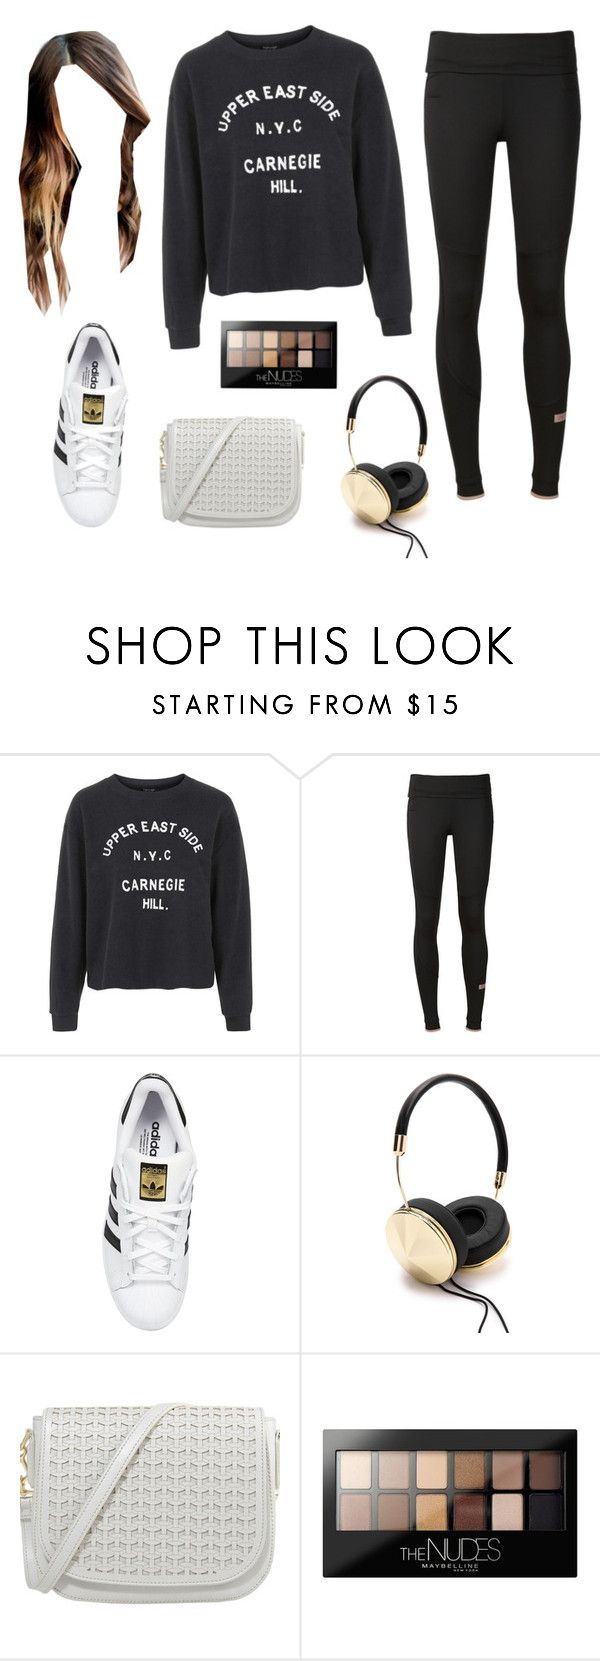 """""""Sporty Casual :)"""" by sophiesayshi ❤ liked on Polyvore featuring Topshop, adidas, adidas Originals, Frends and Maybelline"""